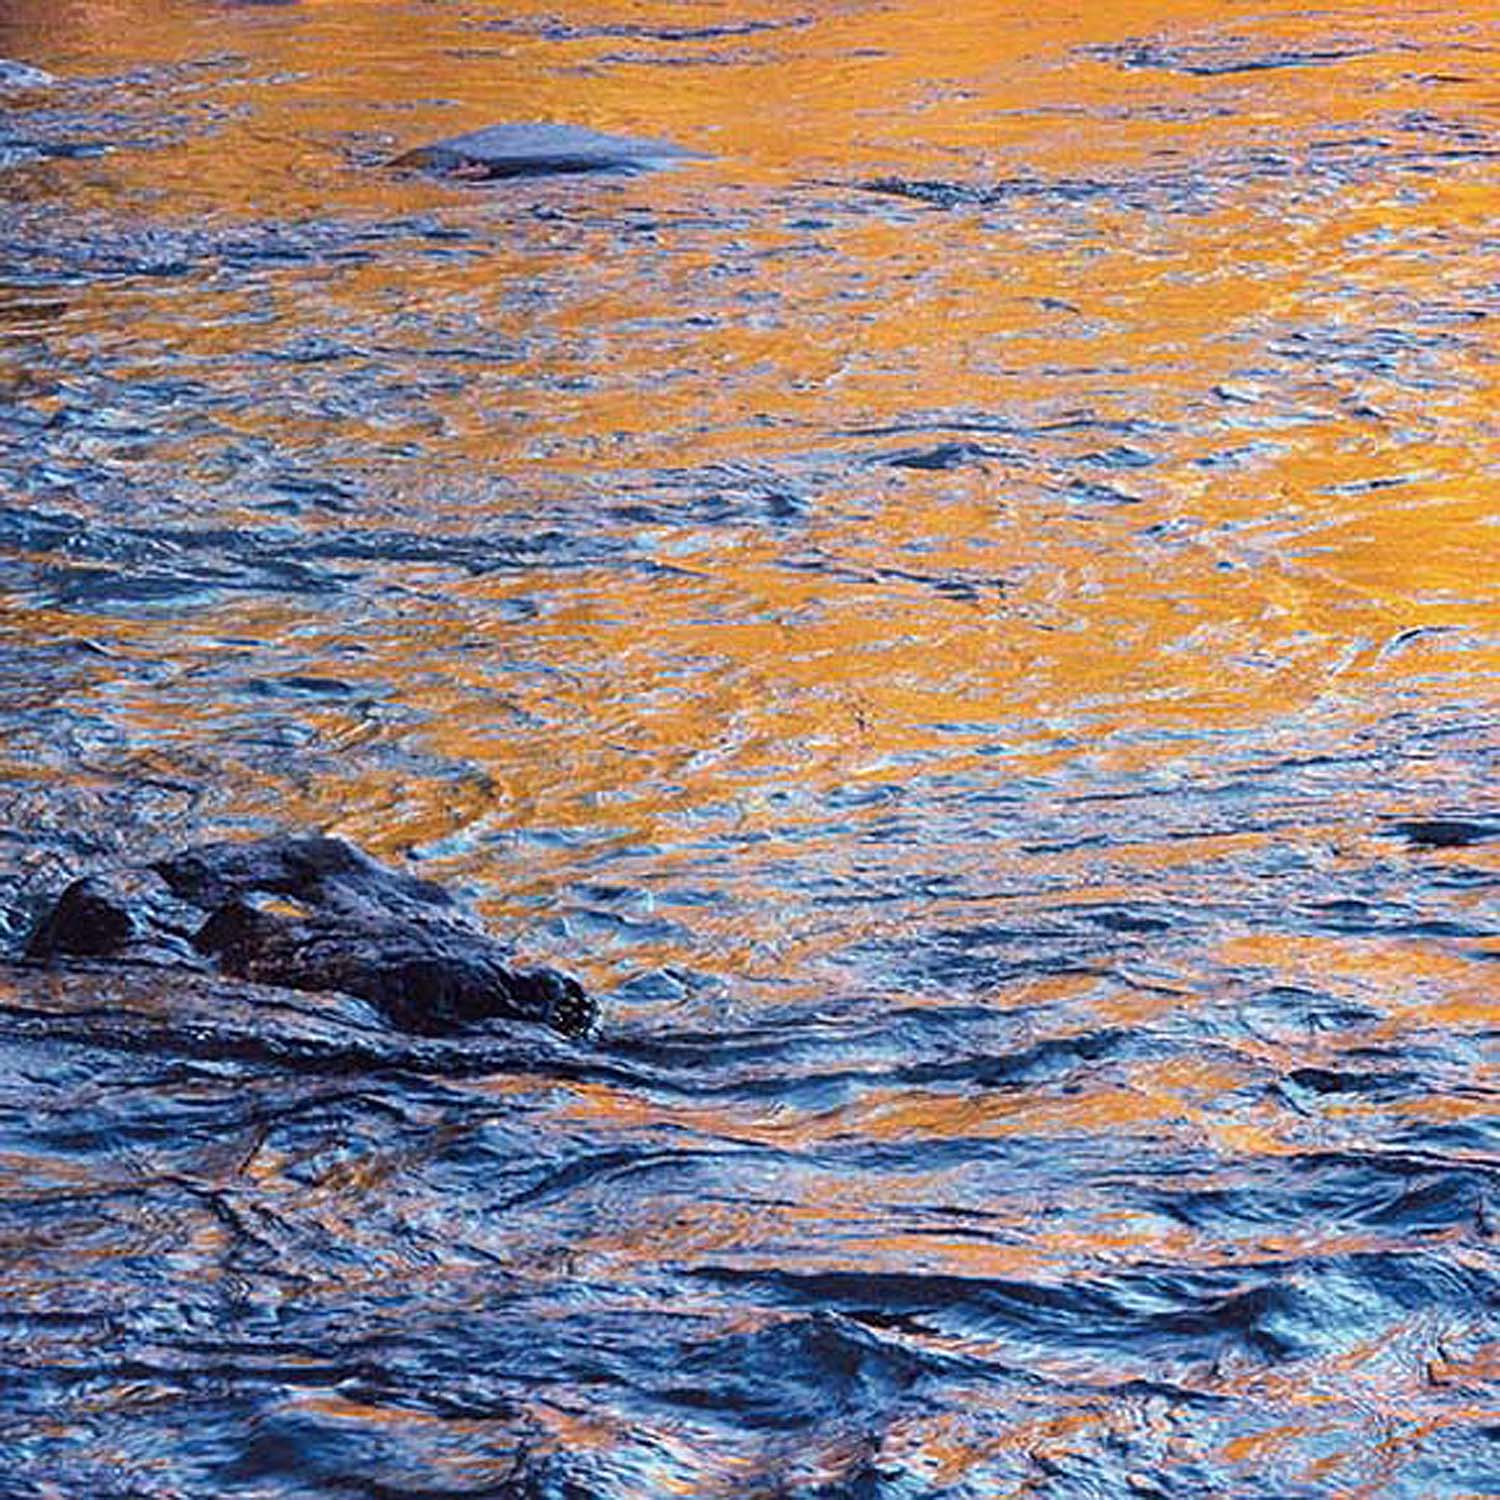 """Christopher Burkett """"Blue and Gold Swirling Water,"""" Colorado     Cibachrome Photograph     Available in 20"""" x 20"""", 30"""" x 30"""", and 40"""" x 40"""""""